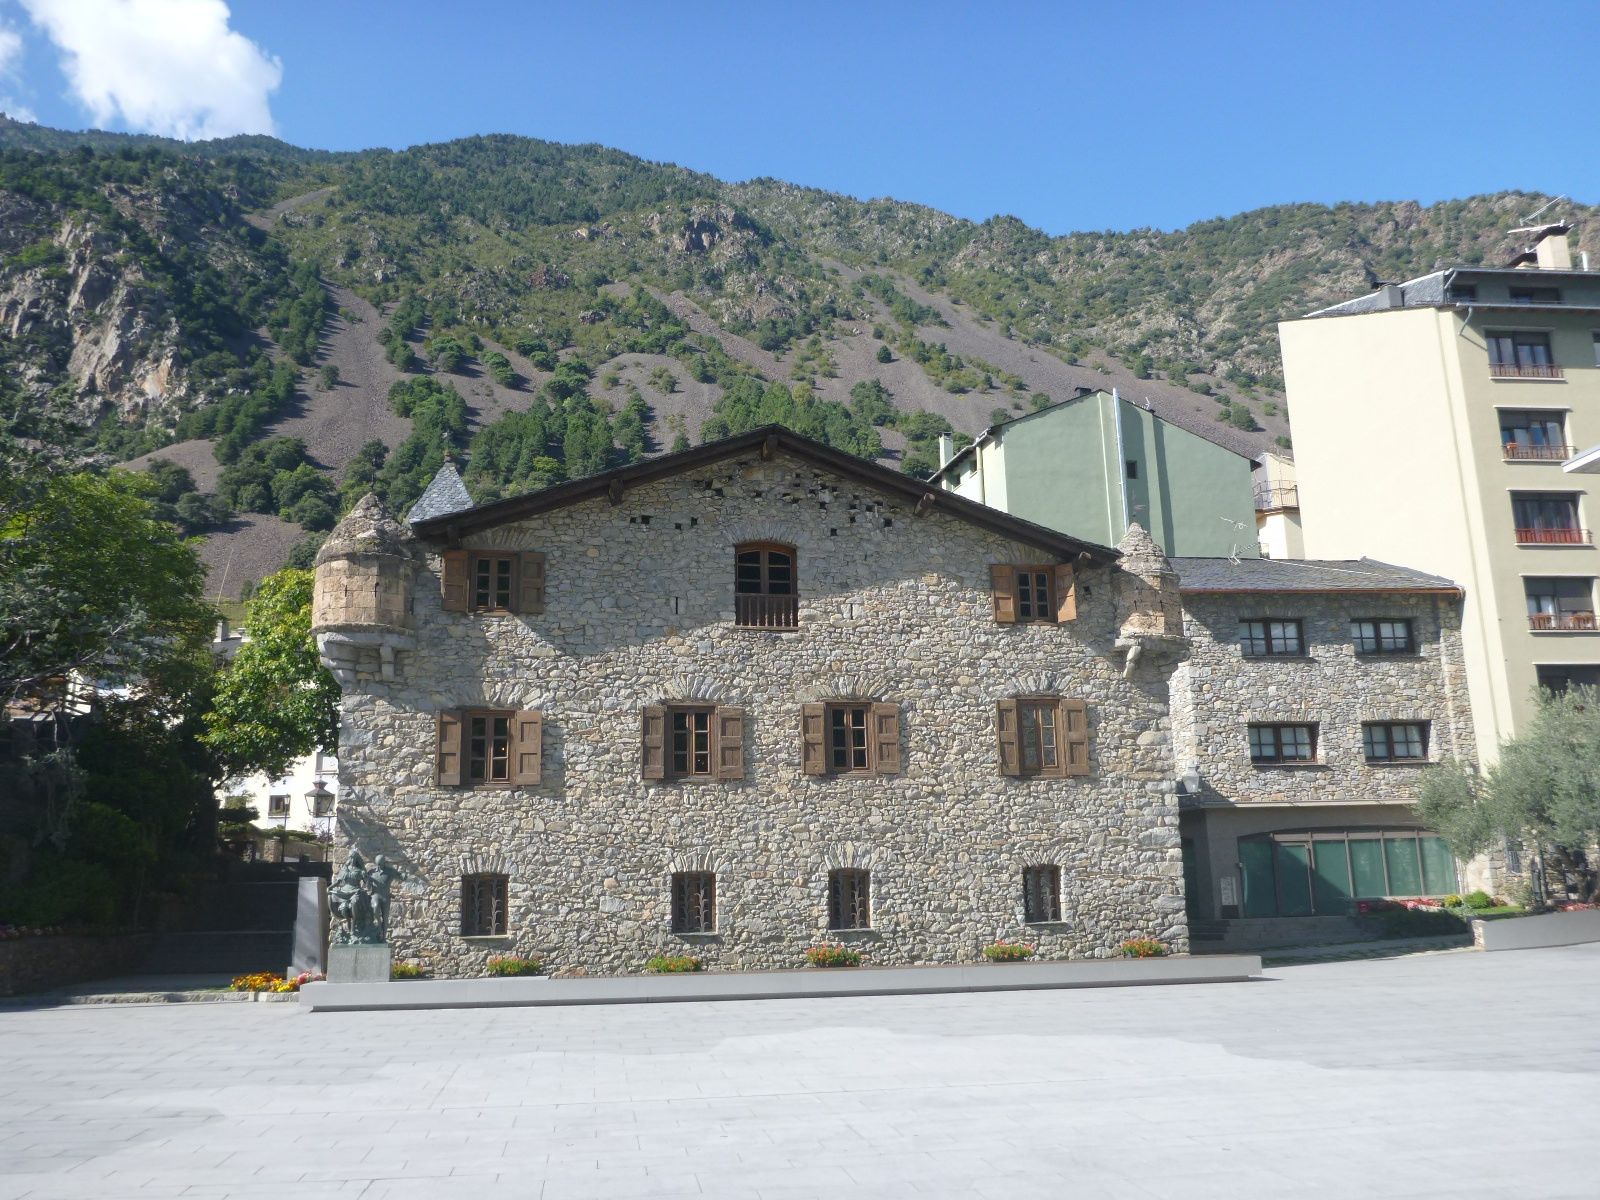 The apartment has 1 double room and 1 twin room and a bathroom. Backpacking in Andorra: Top 10 Sights in Andorra La Vella ...